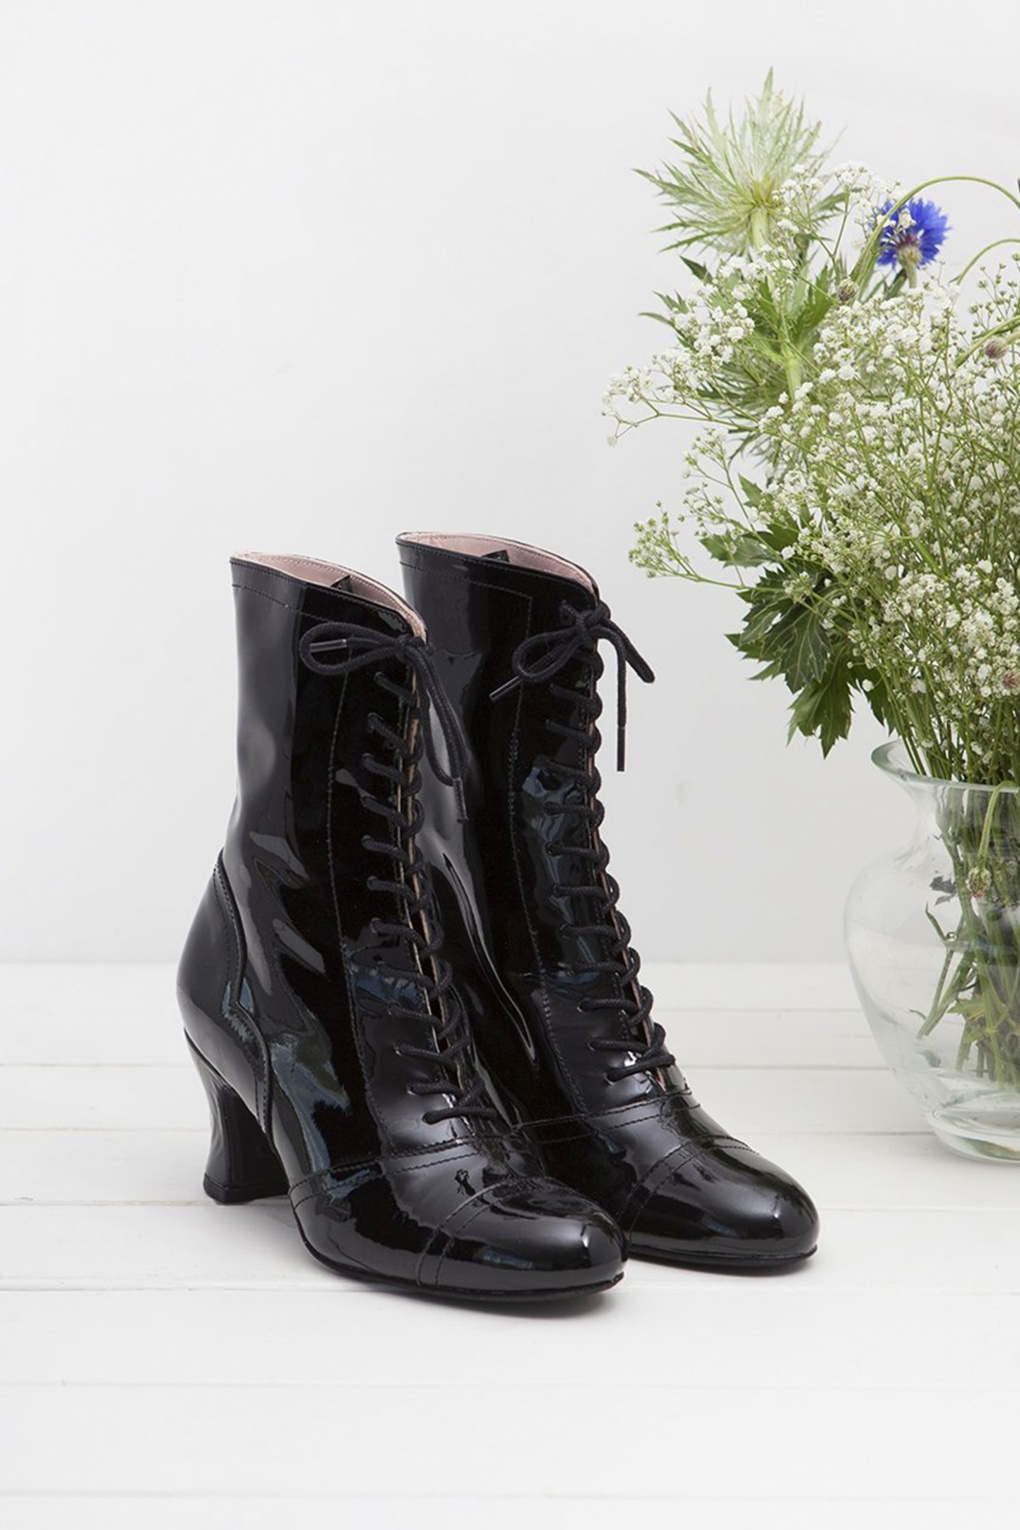 1920s Style Shoes Frida Lace Up Booties in Patent Black £170.39 AT vintagedancer.com